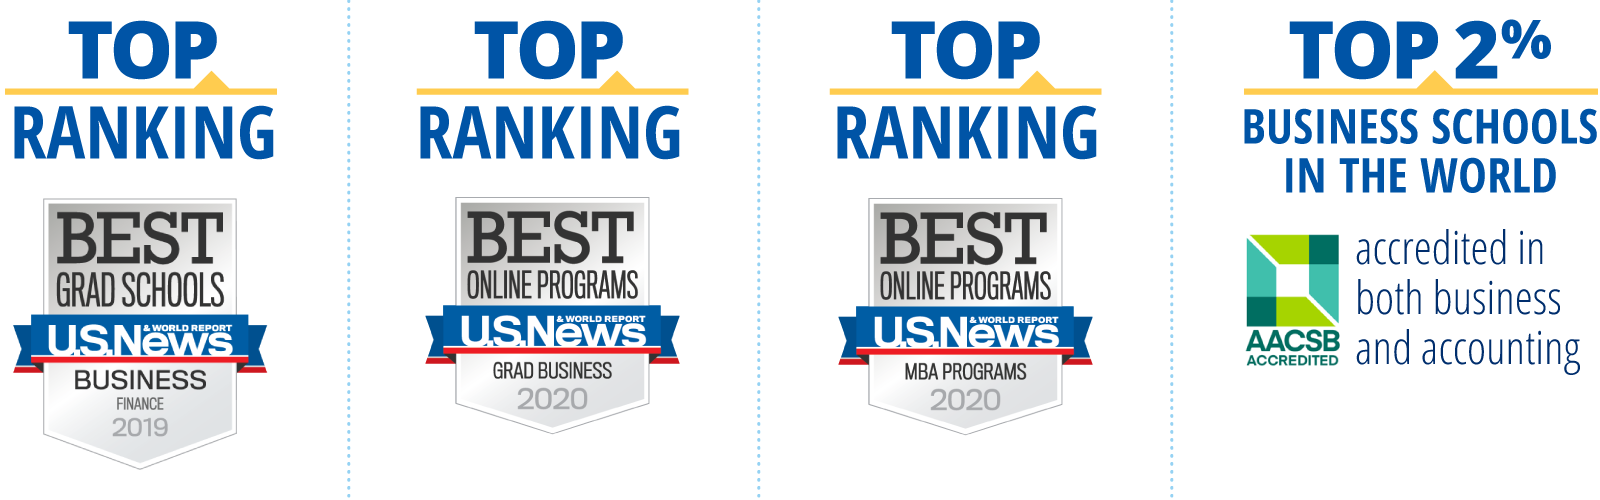 Top rankings from U.S. News and World Report and top 2% of business schools in the world accredited in business and accounting